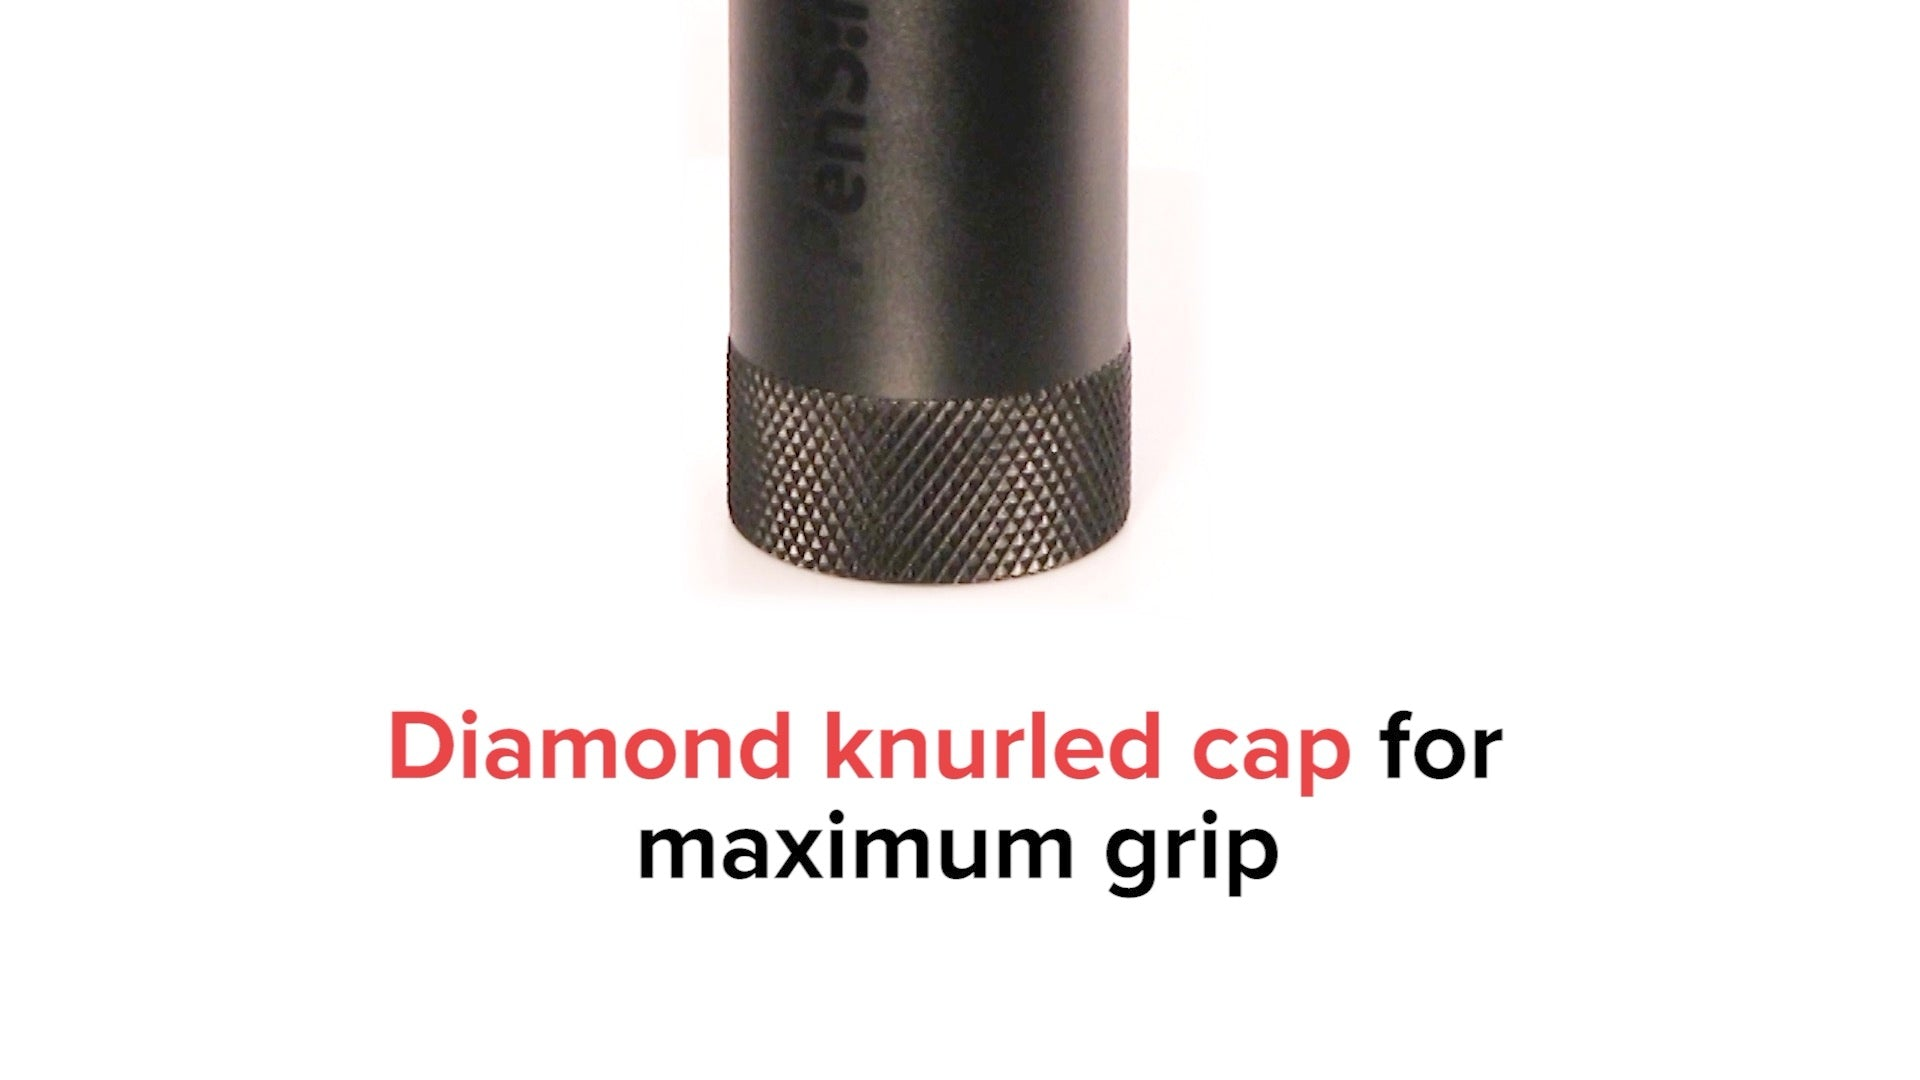 PenSimple Direct Portable Herb Grinder and Dispenser has a diamond knurled cap to allow for superior grip.